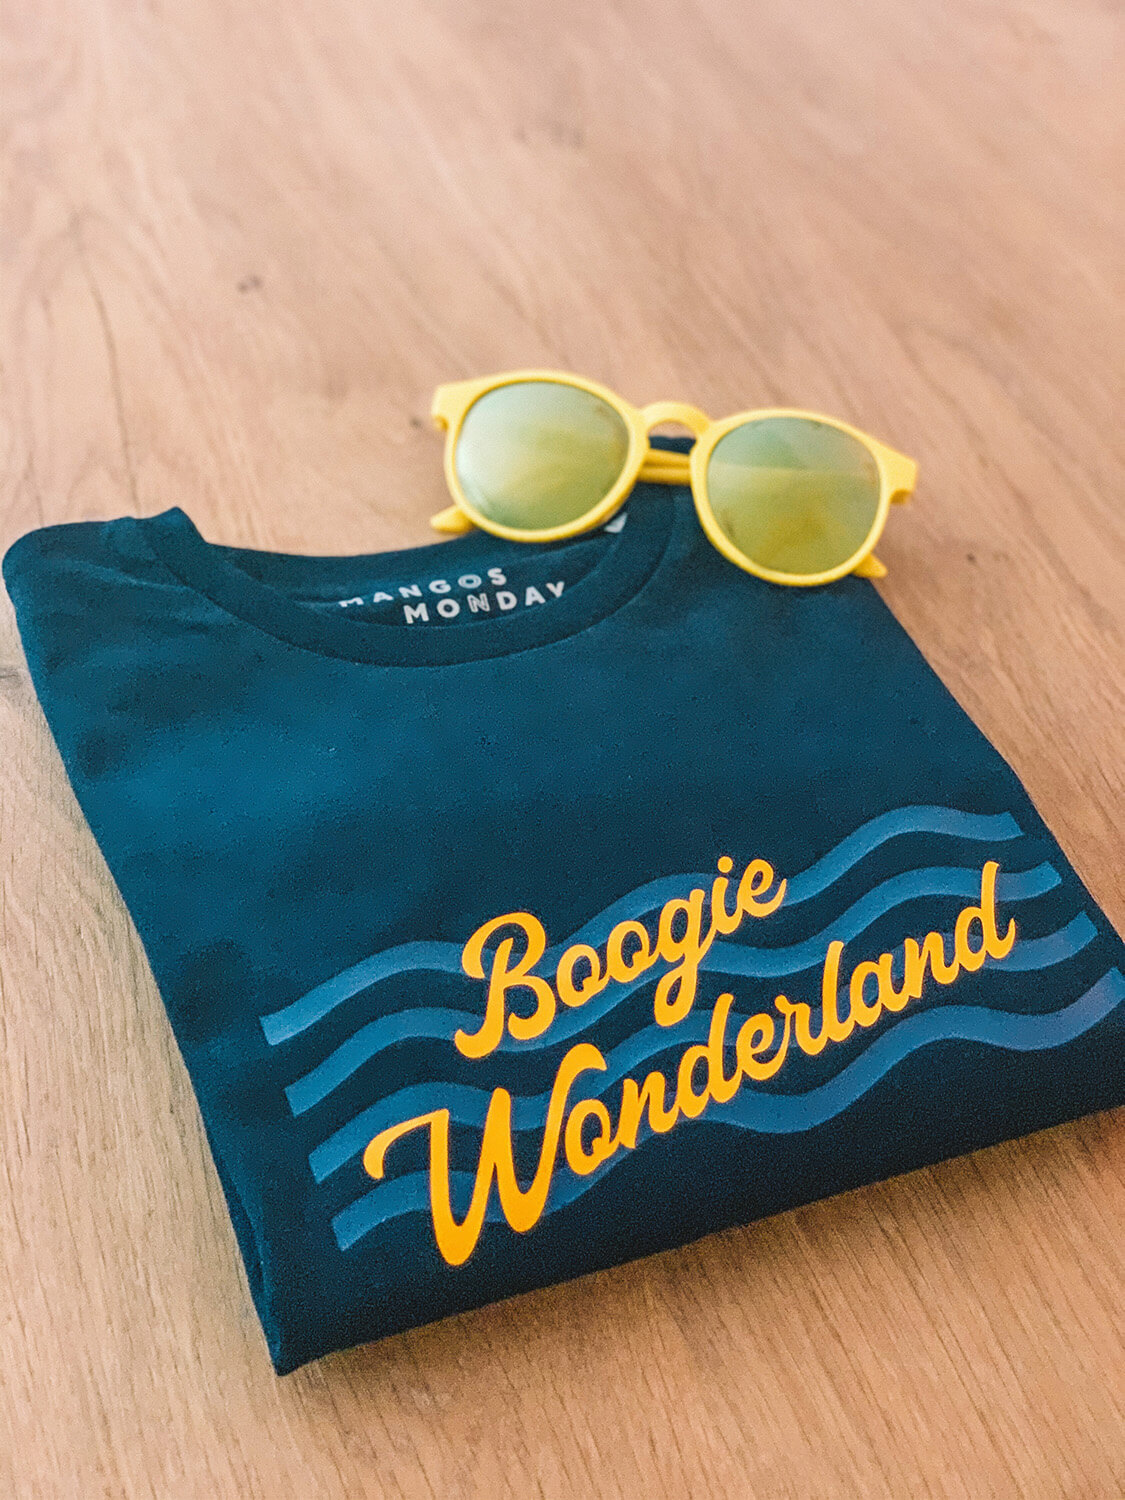 Boogie Wonderland t-shirt by Mangos on Monday